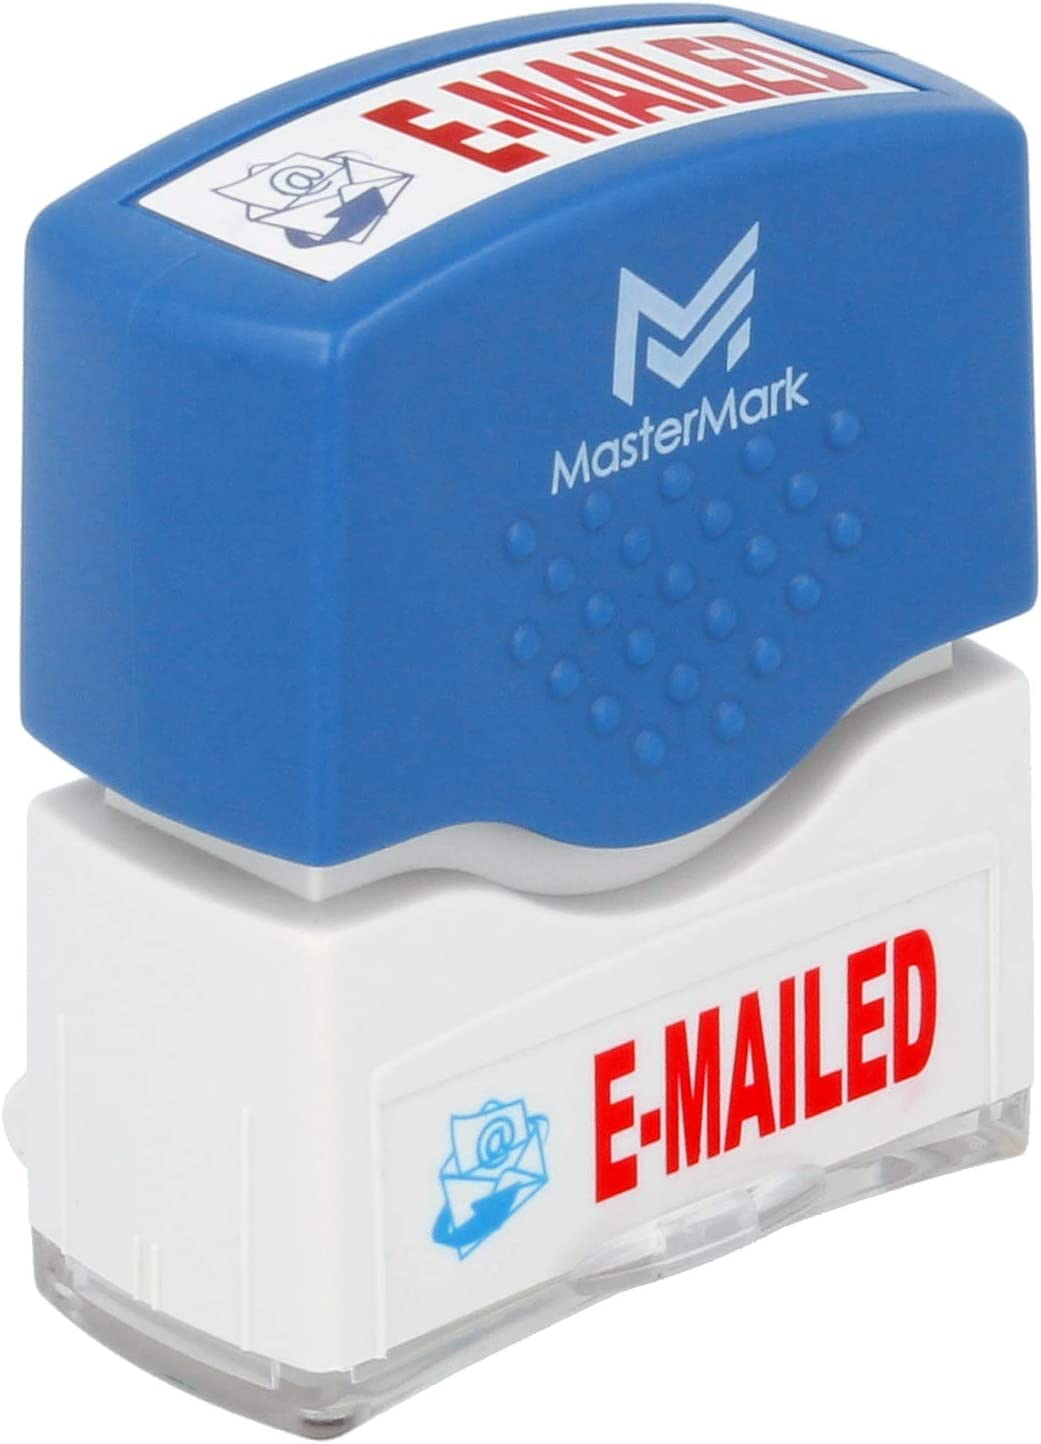 Emailed Stamp – MasterMark Premium 2-Color Pre-Inked Office Stamp